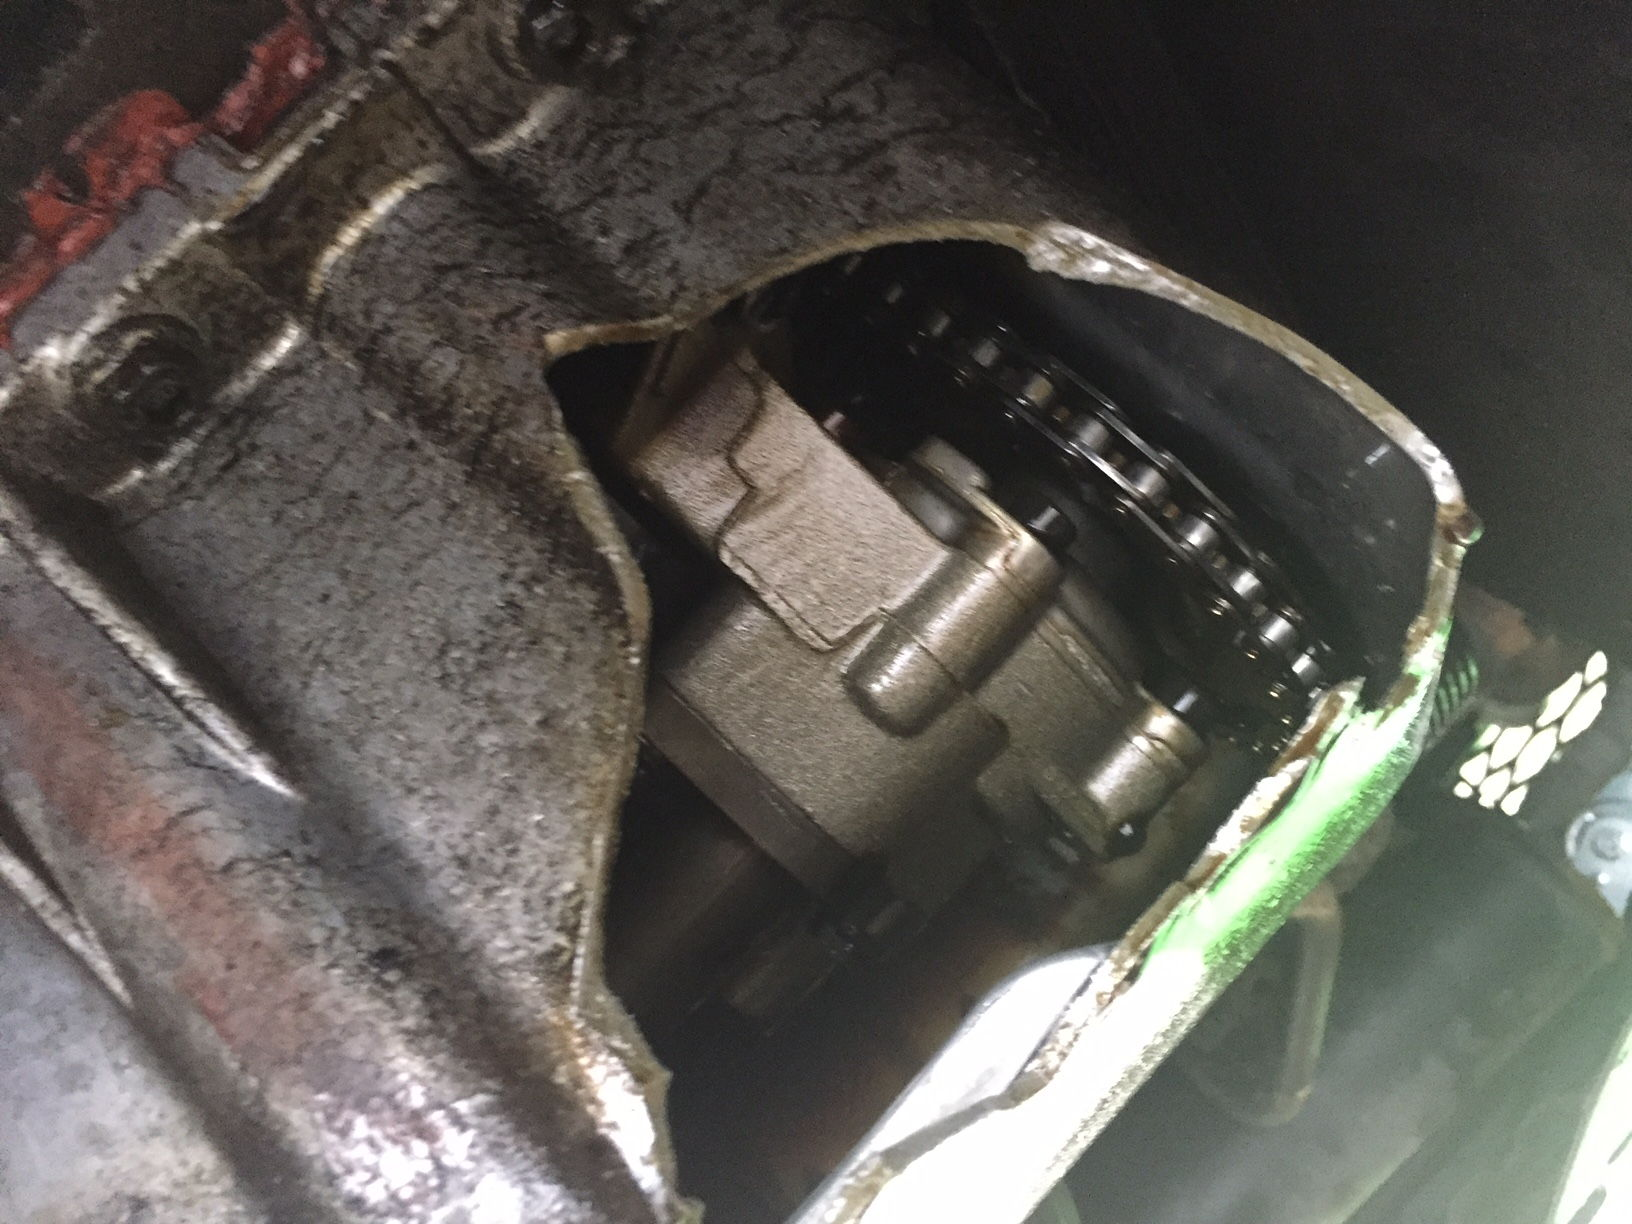 cracked oil pan thoughts audiworld forums rh audiworld com 2004 Audi RS6 Specs 2006 Audi RS6 Specs